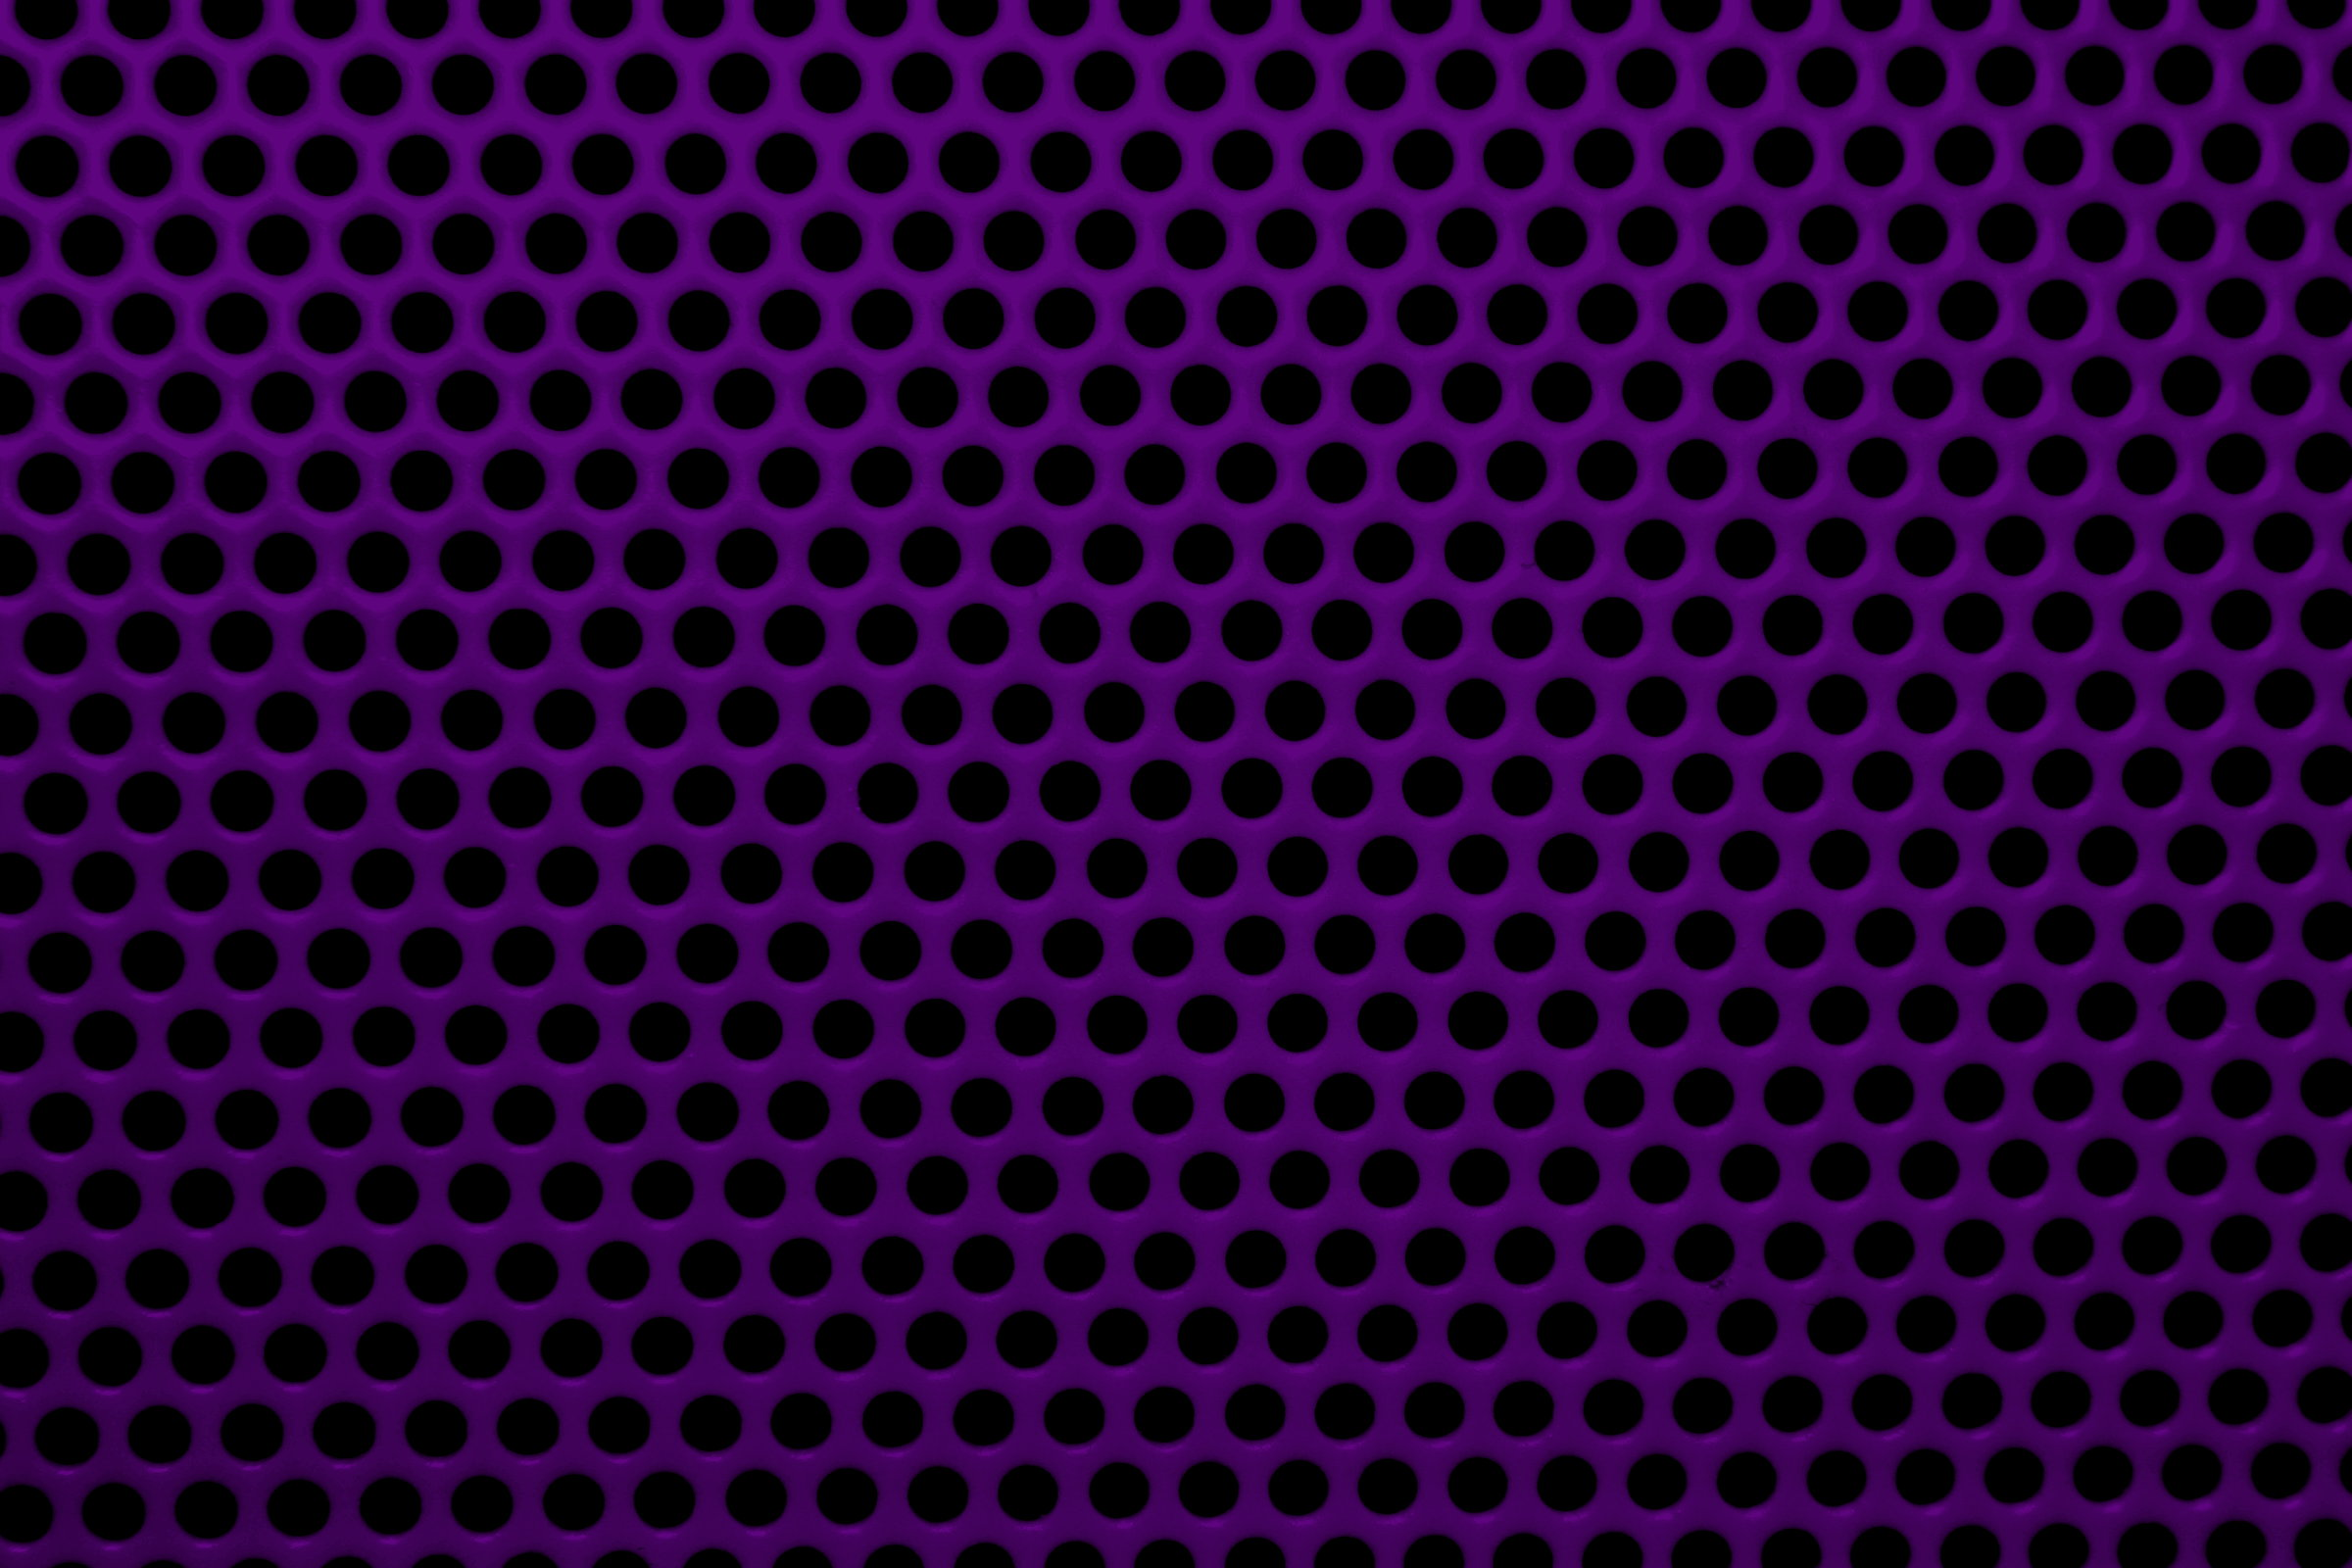 Dark Purple Metal Mesh With Round Holes Texture Picture